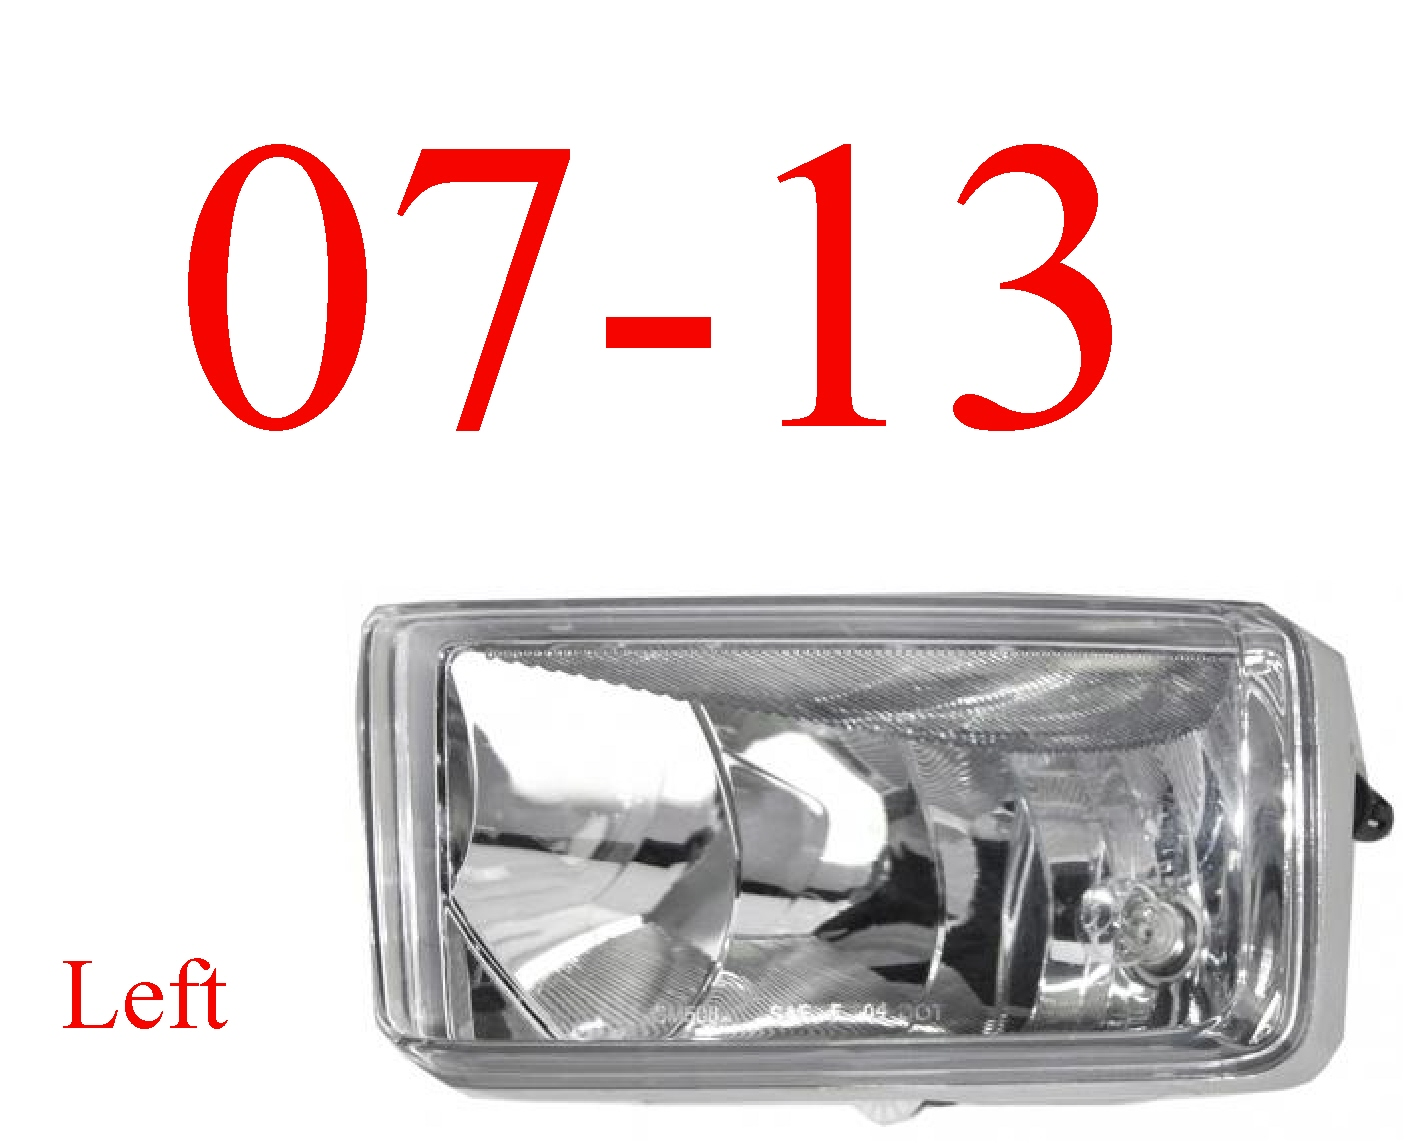 07-13 Chevy Left Fog Light Assembly